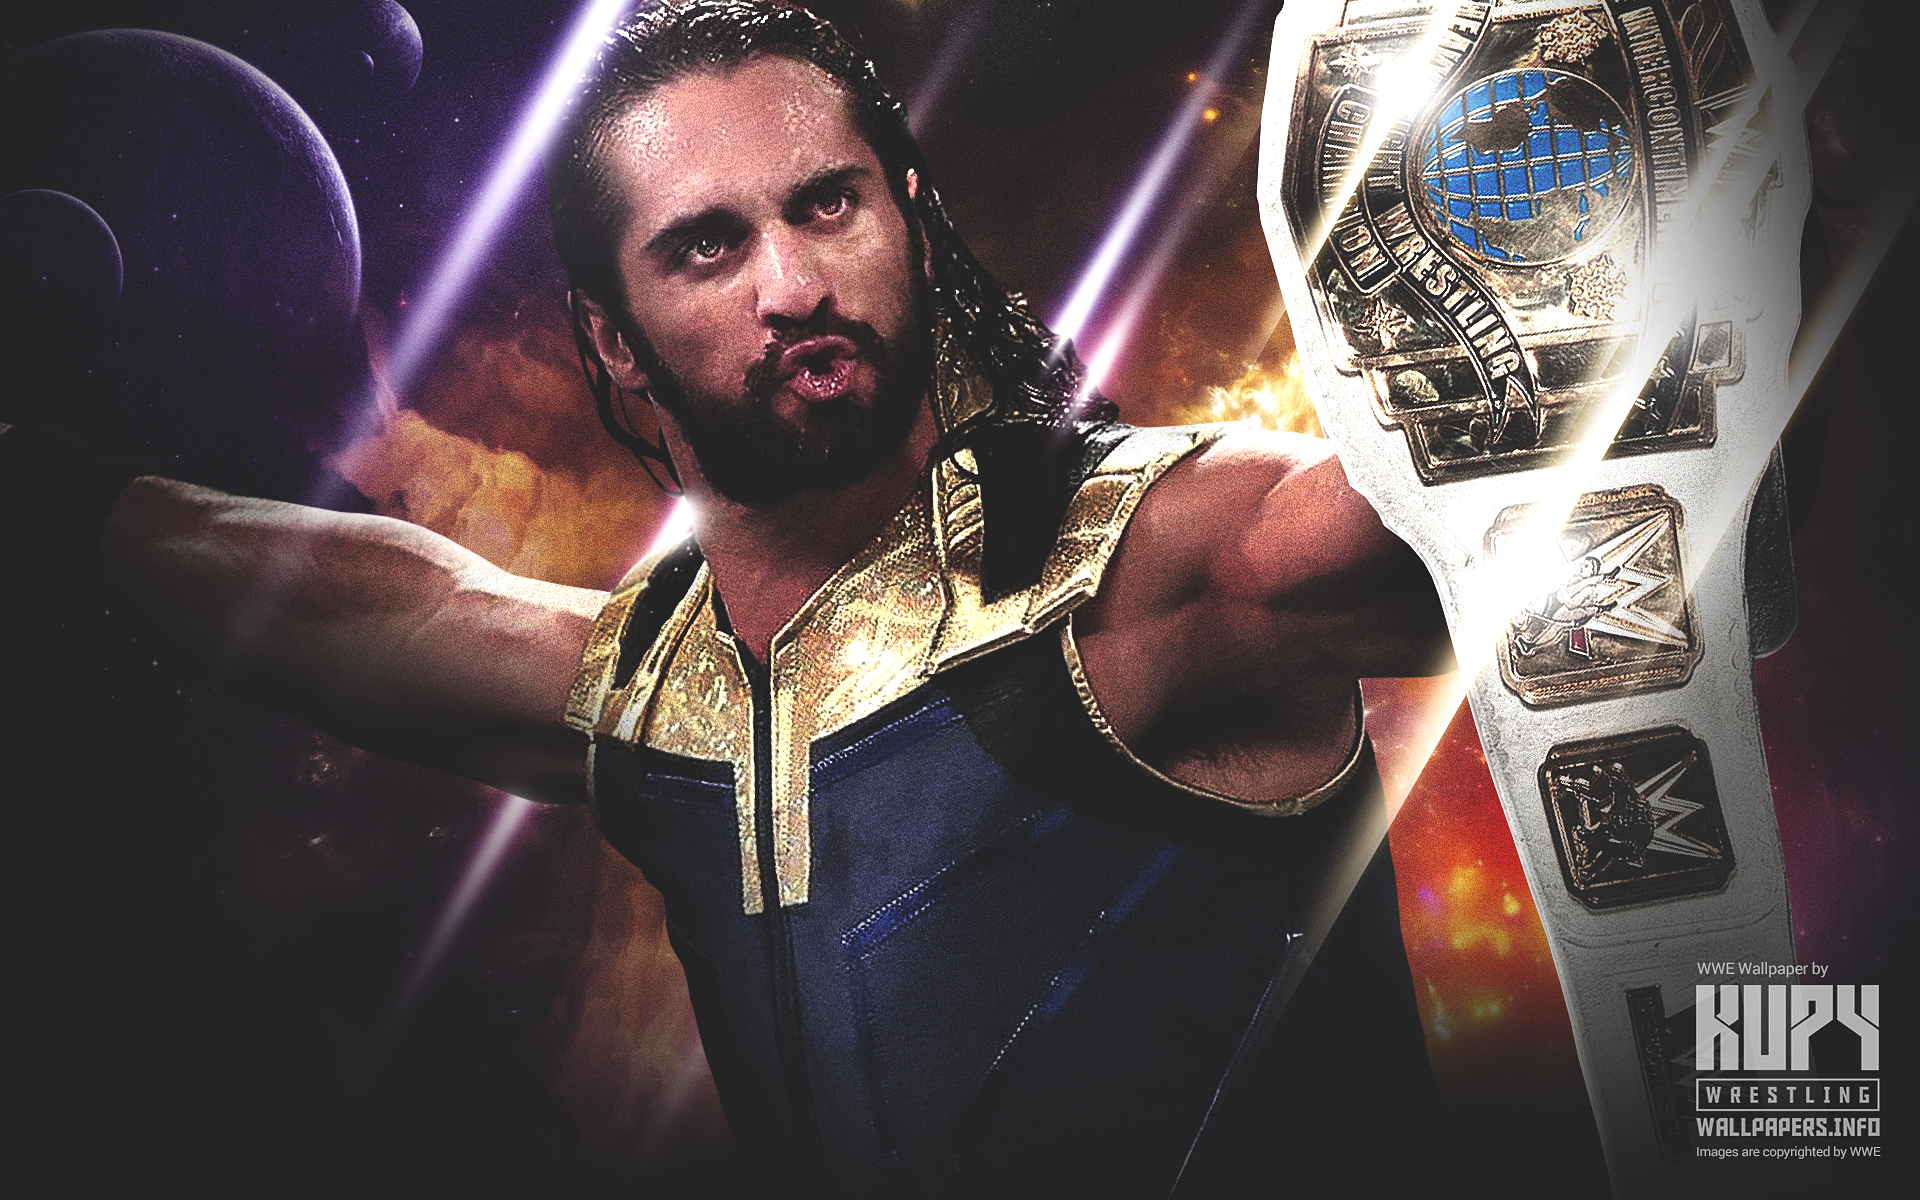 Wwe Summerslam 2018 Aftermath New Intercontinental Champion Seth